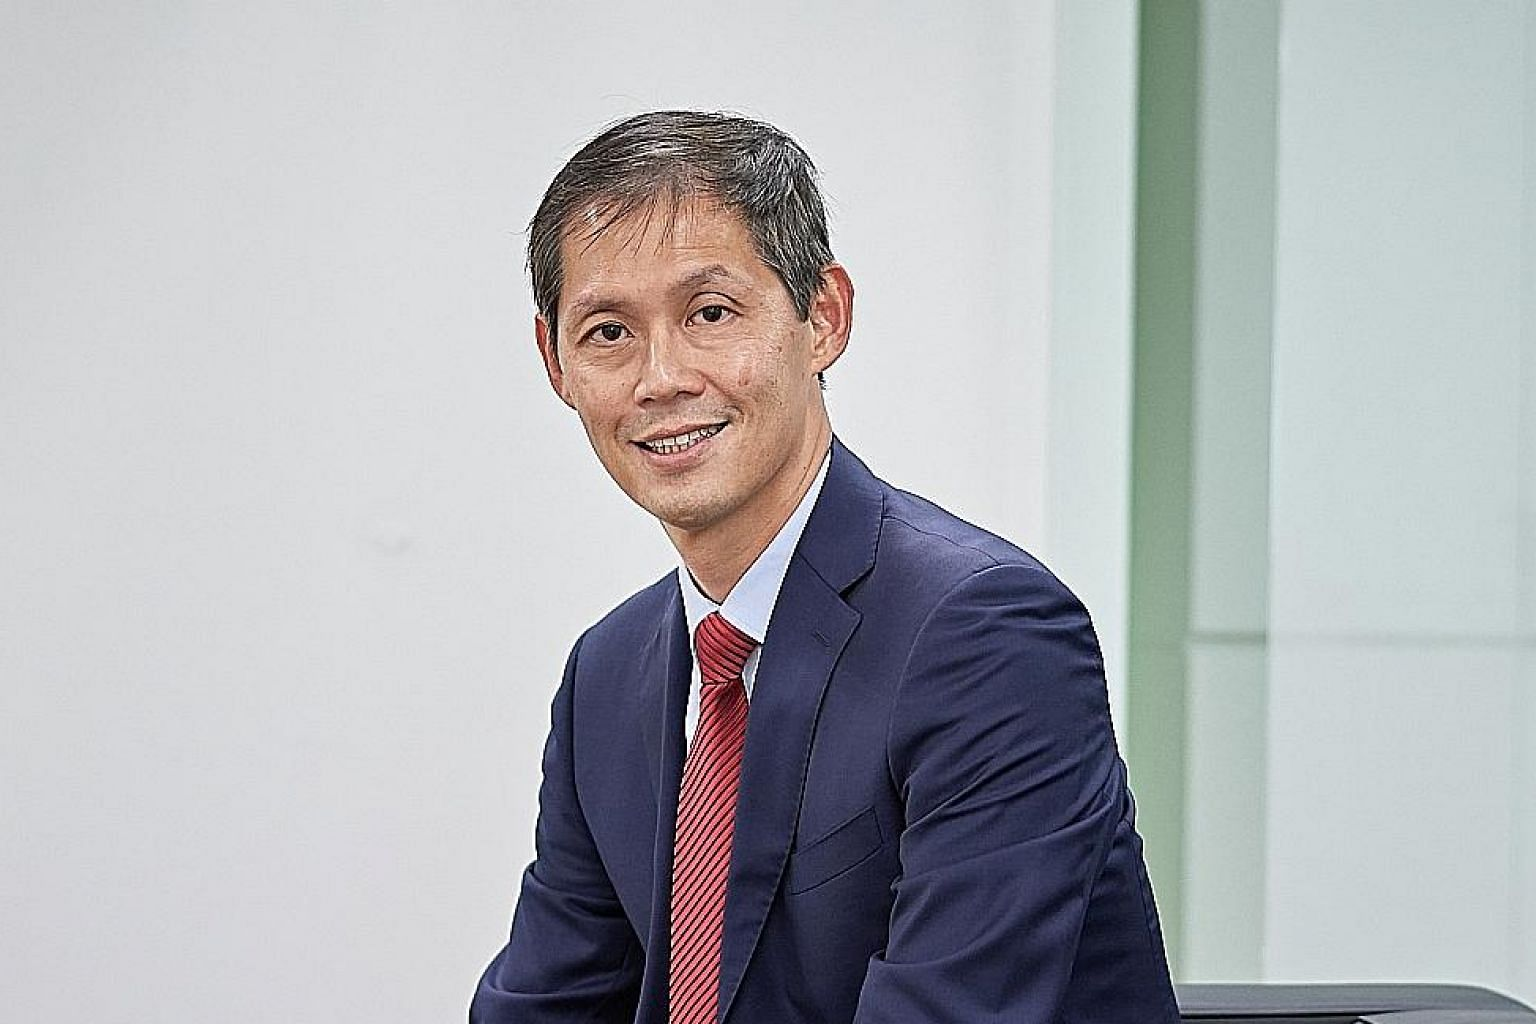 Doctor-businessman Goh Jin Hian has not been accused of fraudulent conduct, The Straits Times understands. The allegations are more akin to negligence when carrying out his duties as a director at marine fuels supplier Inter-Pacific Petroleum.